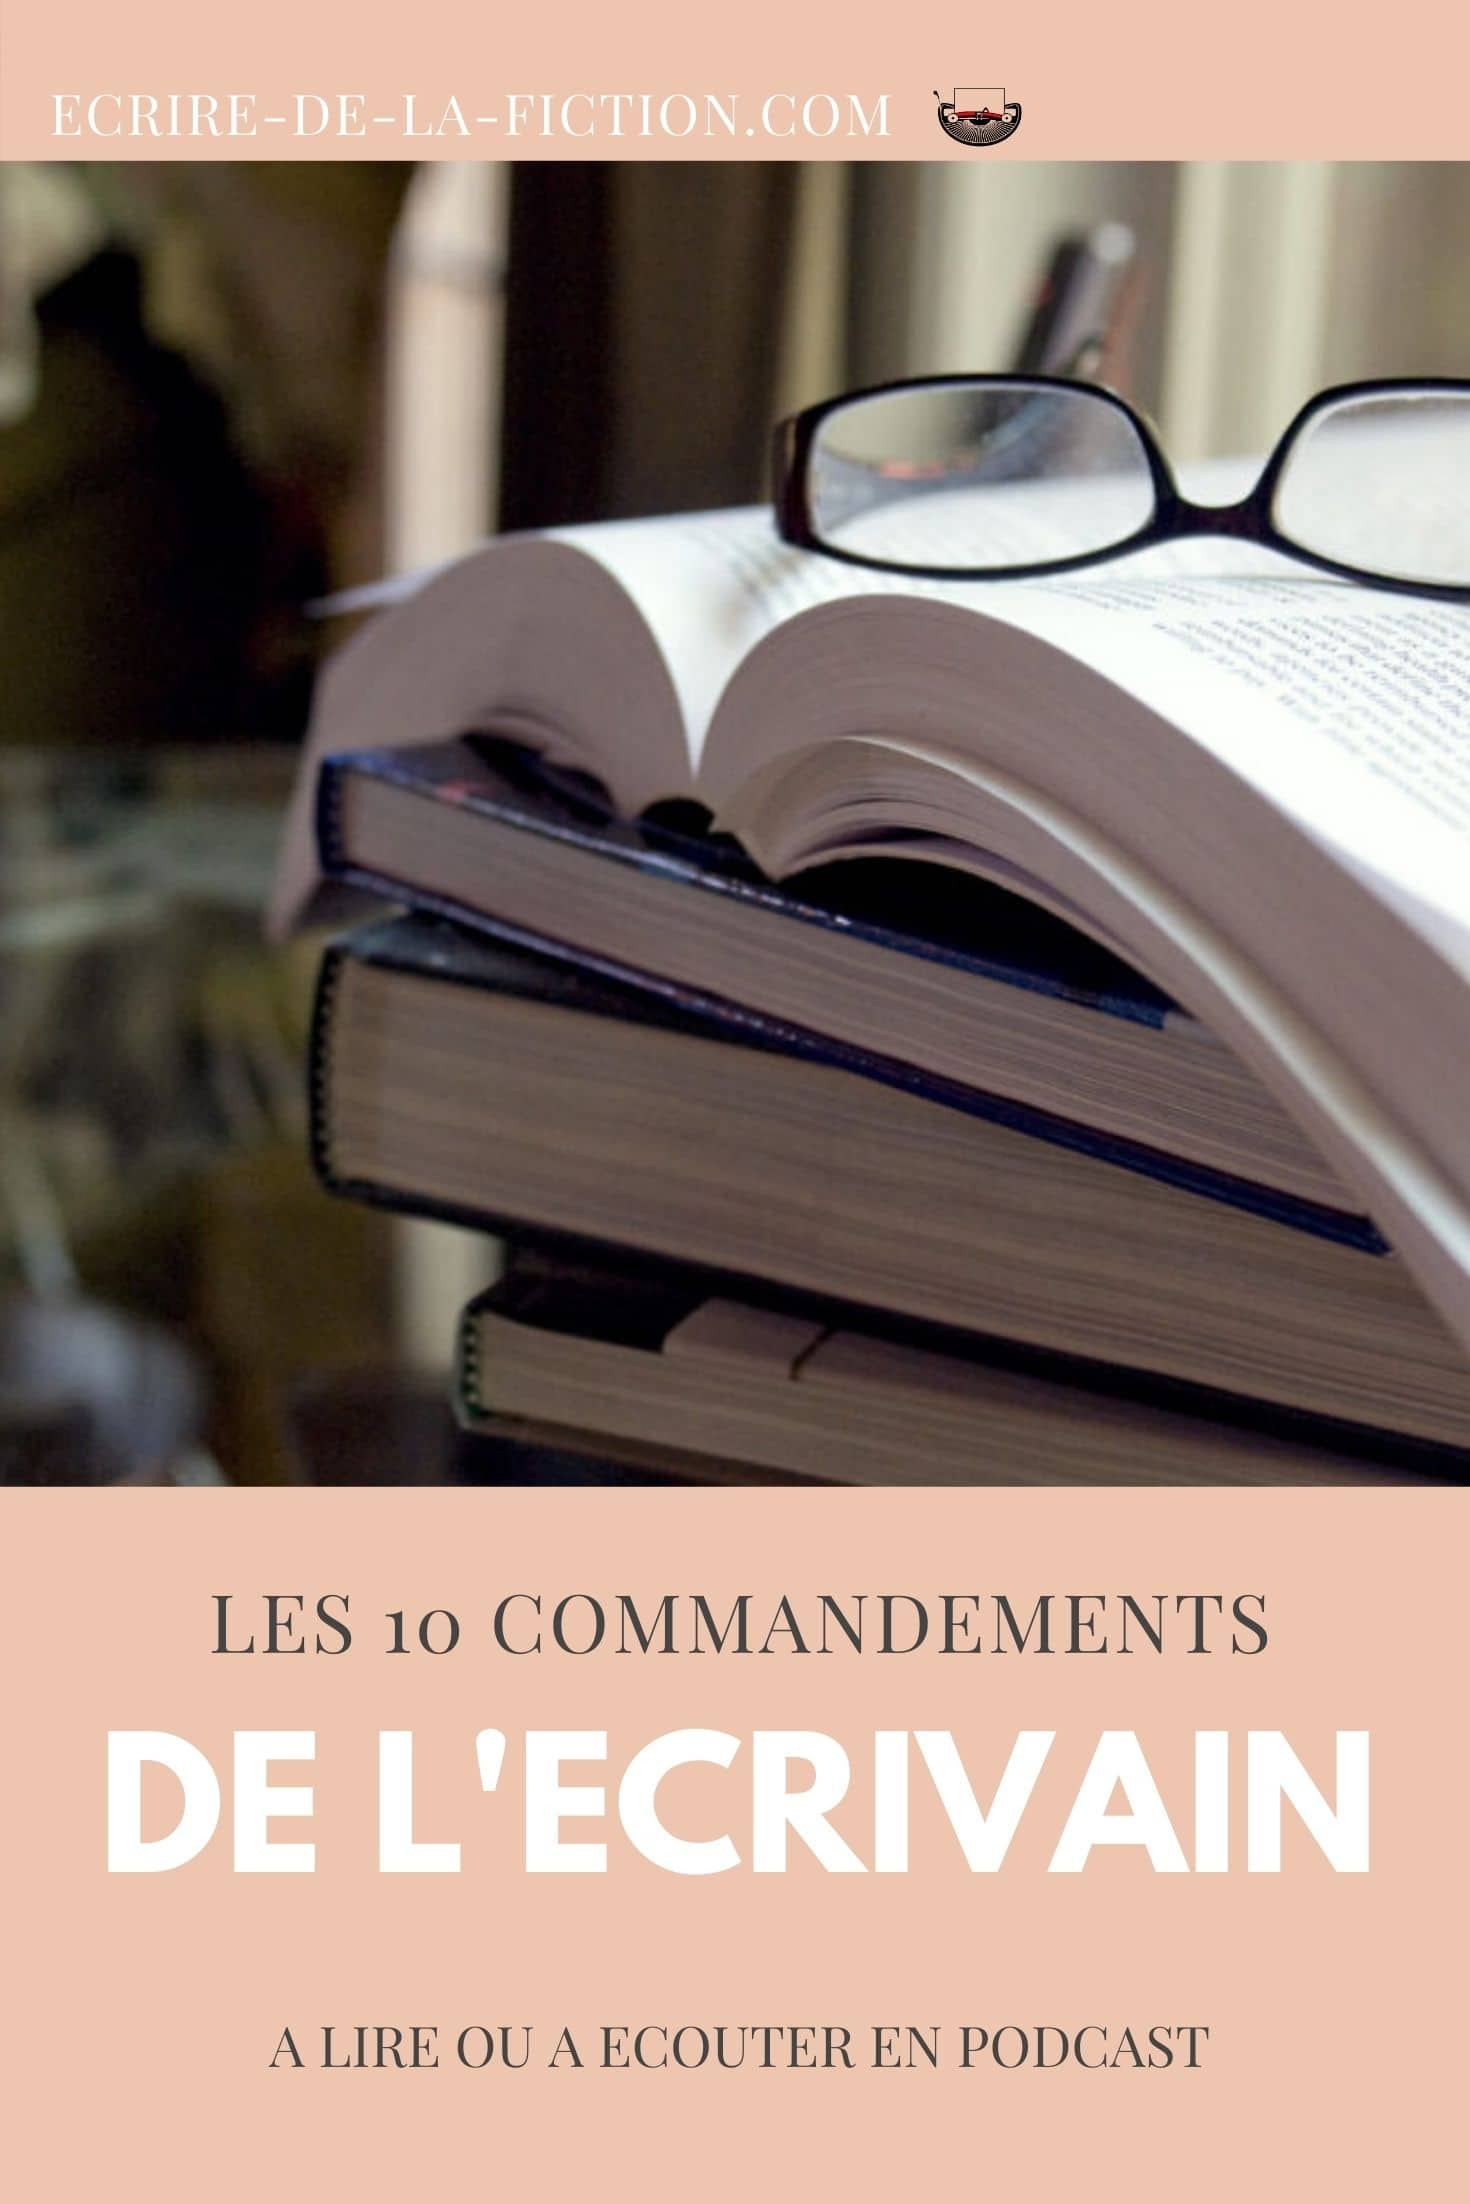 les dix commandements de l ecrivain epingle pinterest